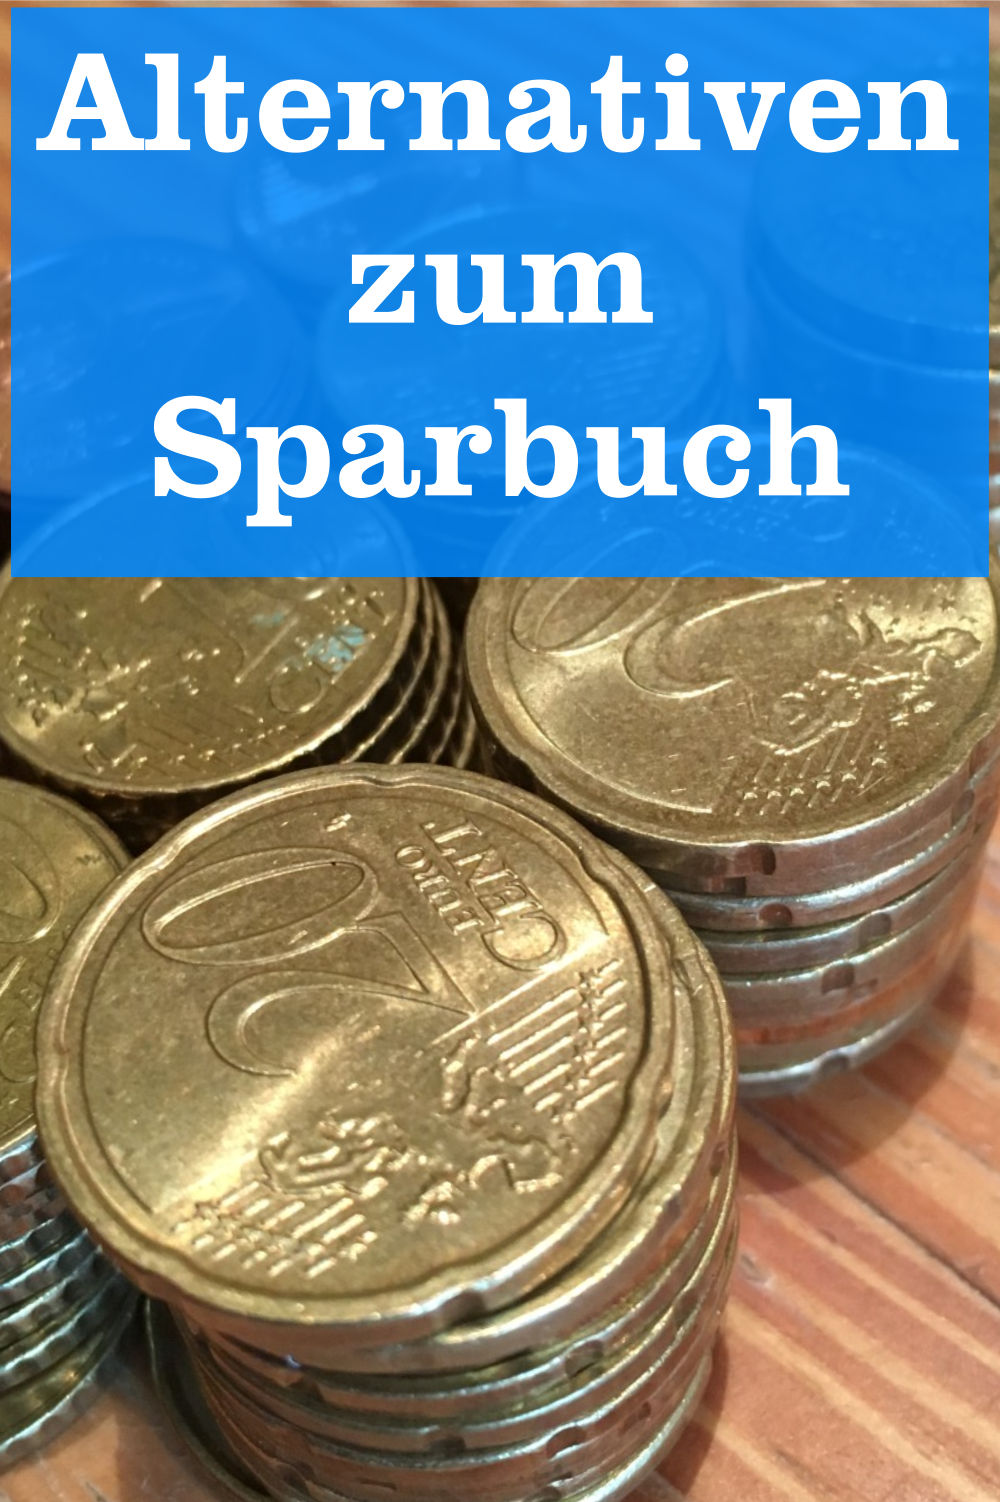 Sparbuch Alternativen